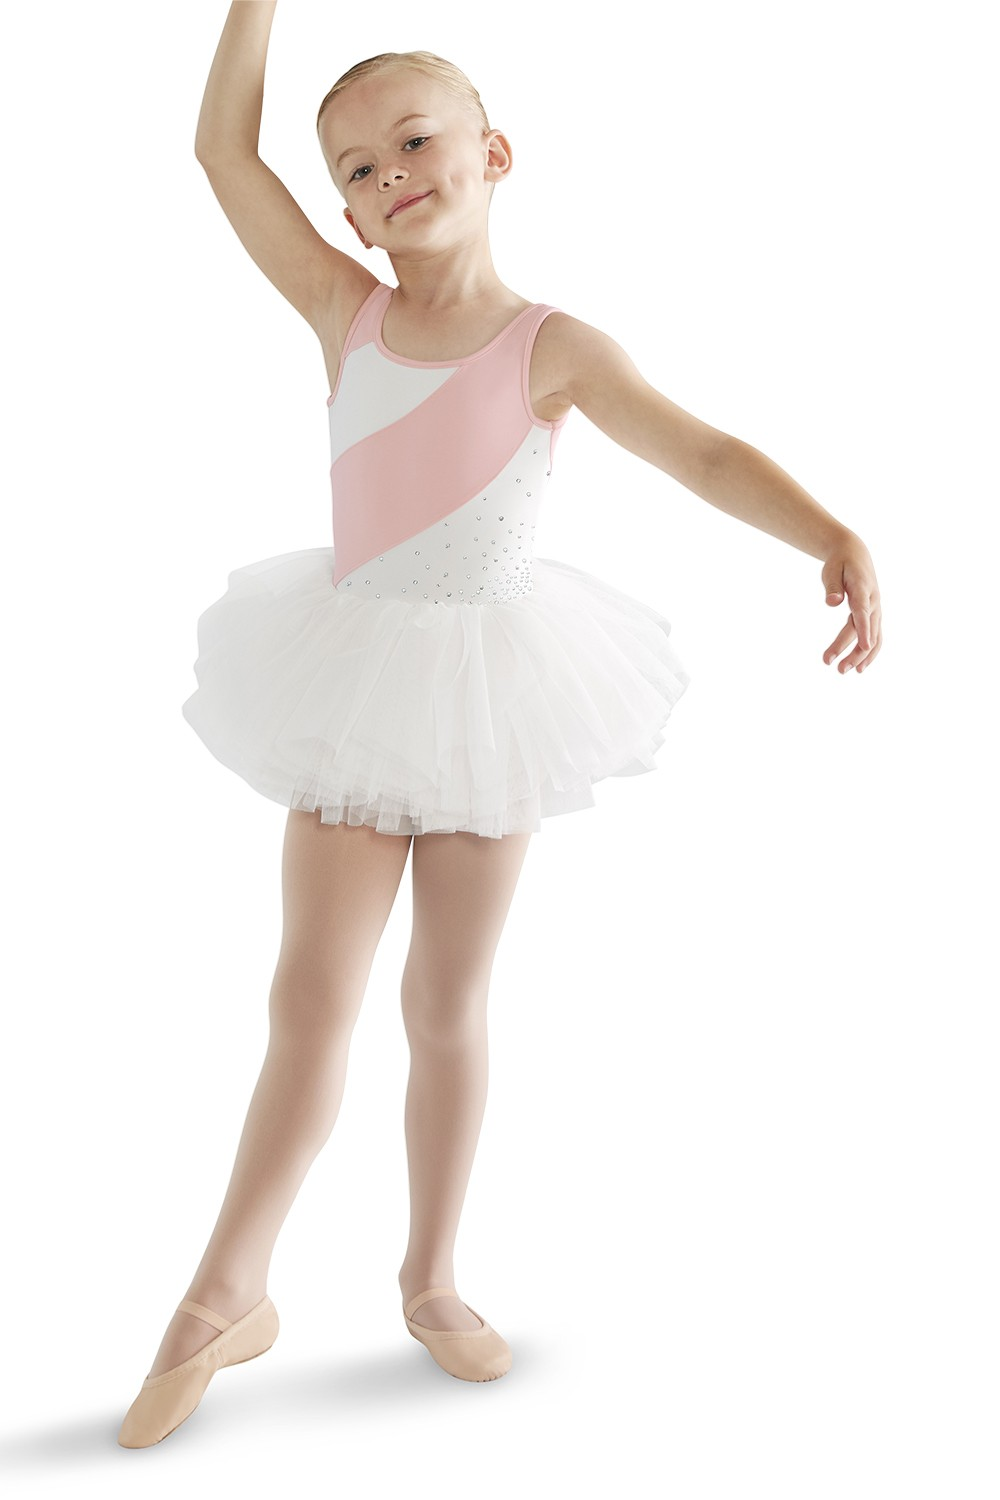 Boloria Children's Dance Leotards